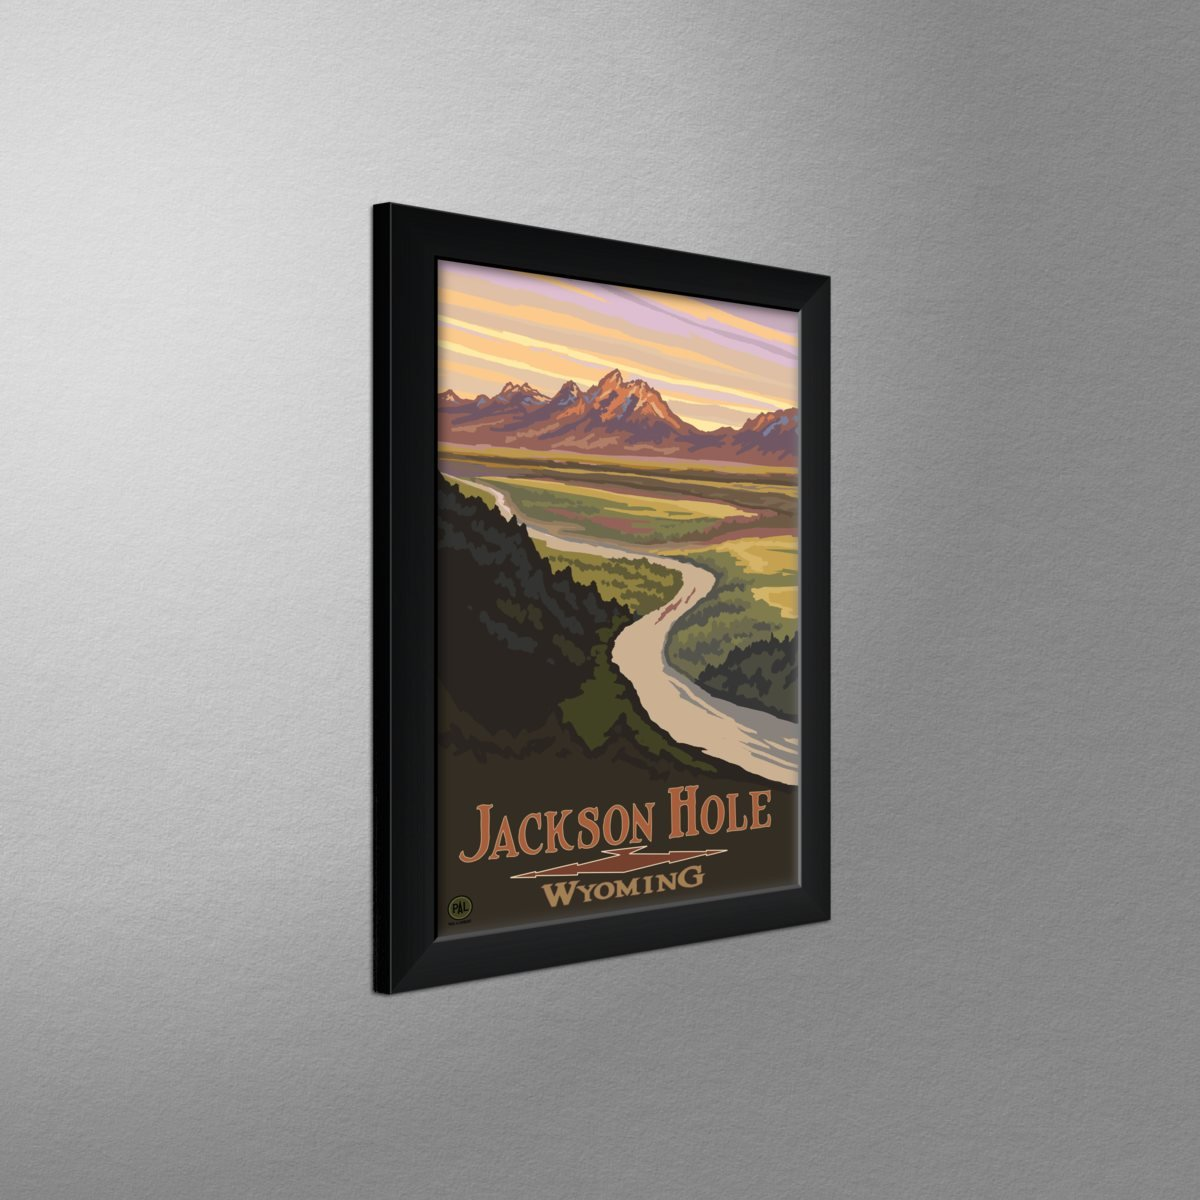 Lanquist 12 x 18 Jackson Hole Wyoming Snake River Overlook Travel Art Print Poster by Paul A